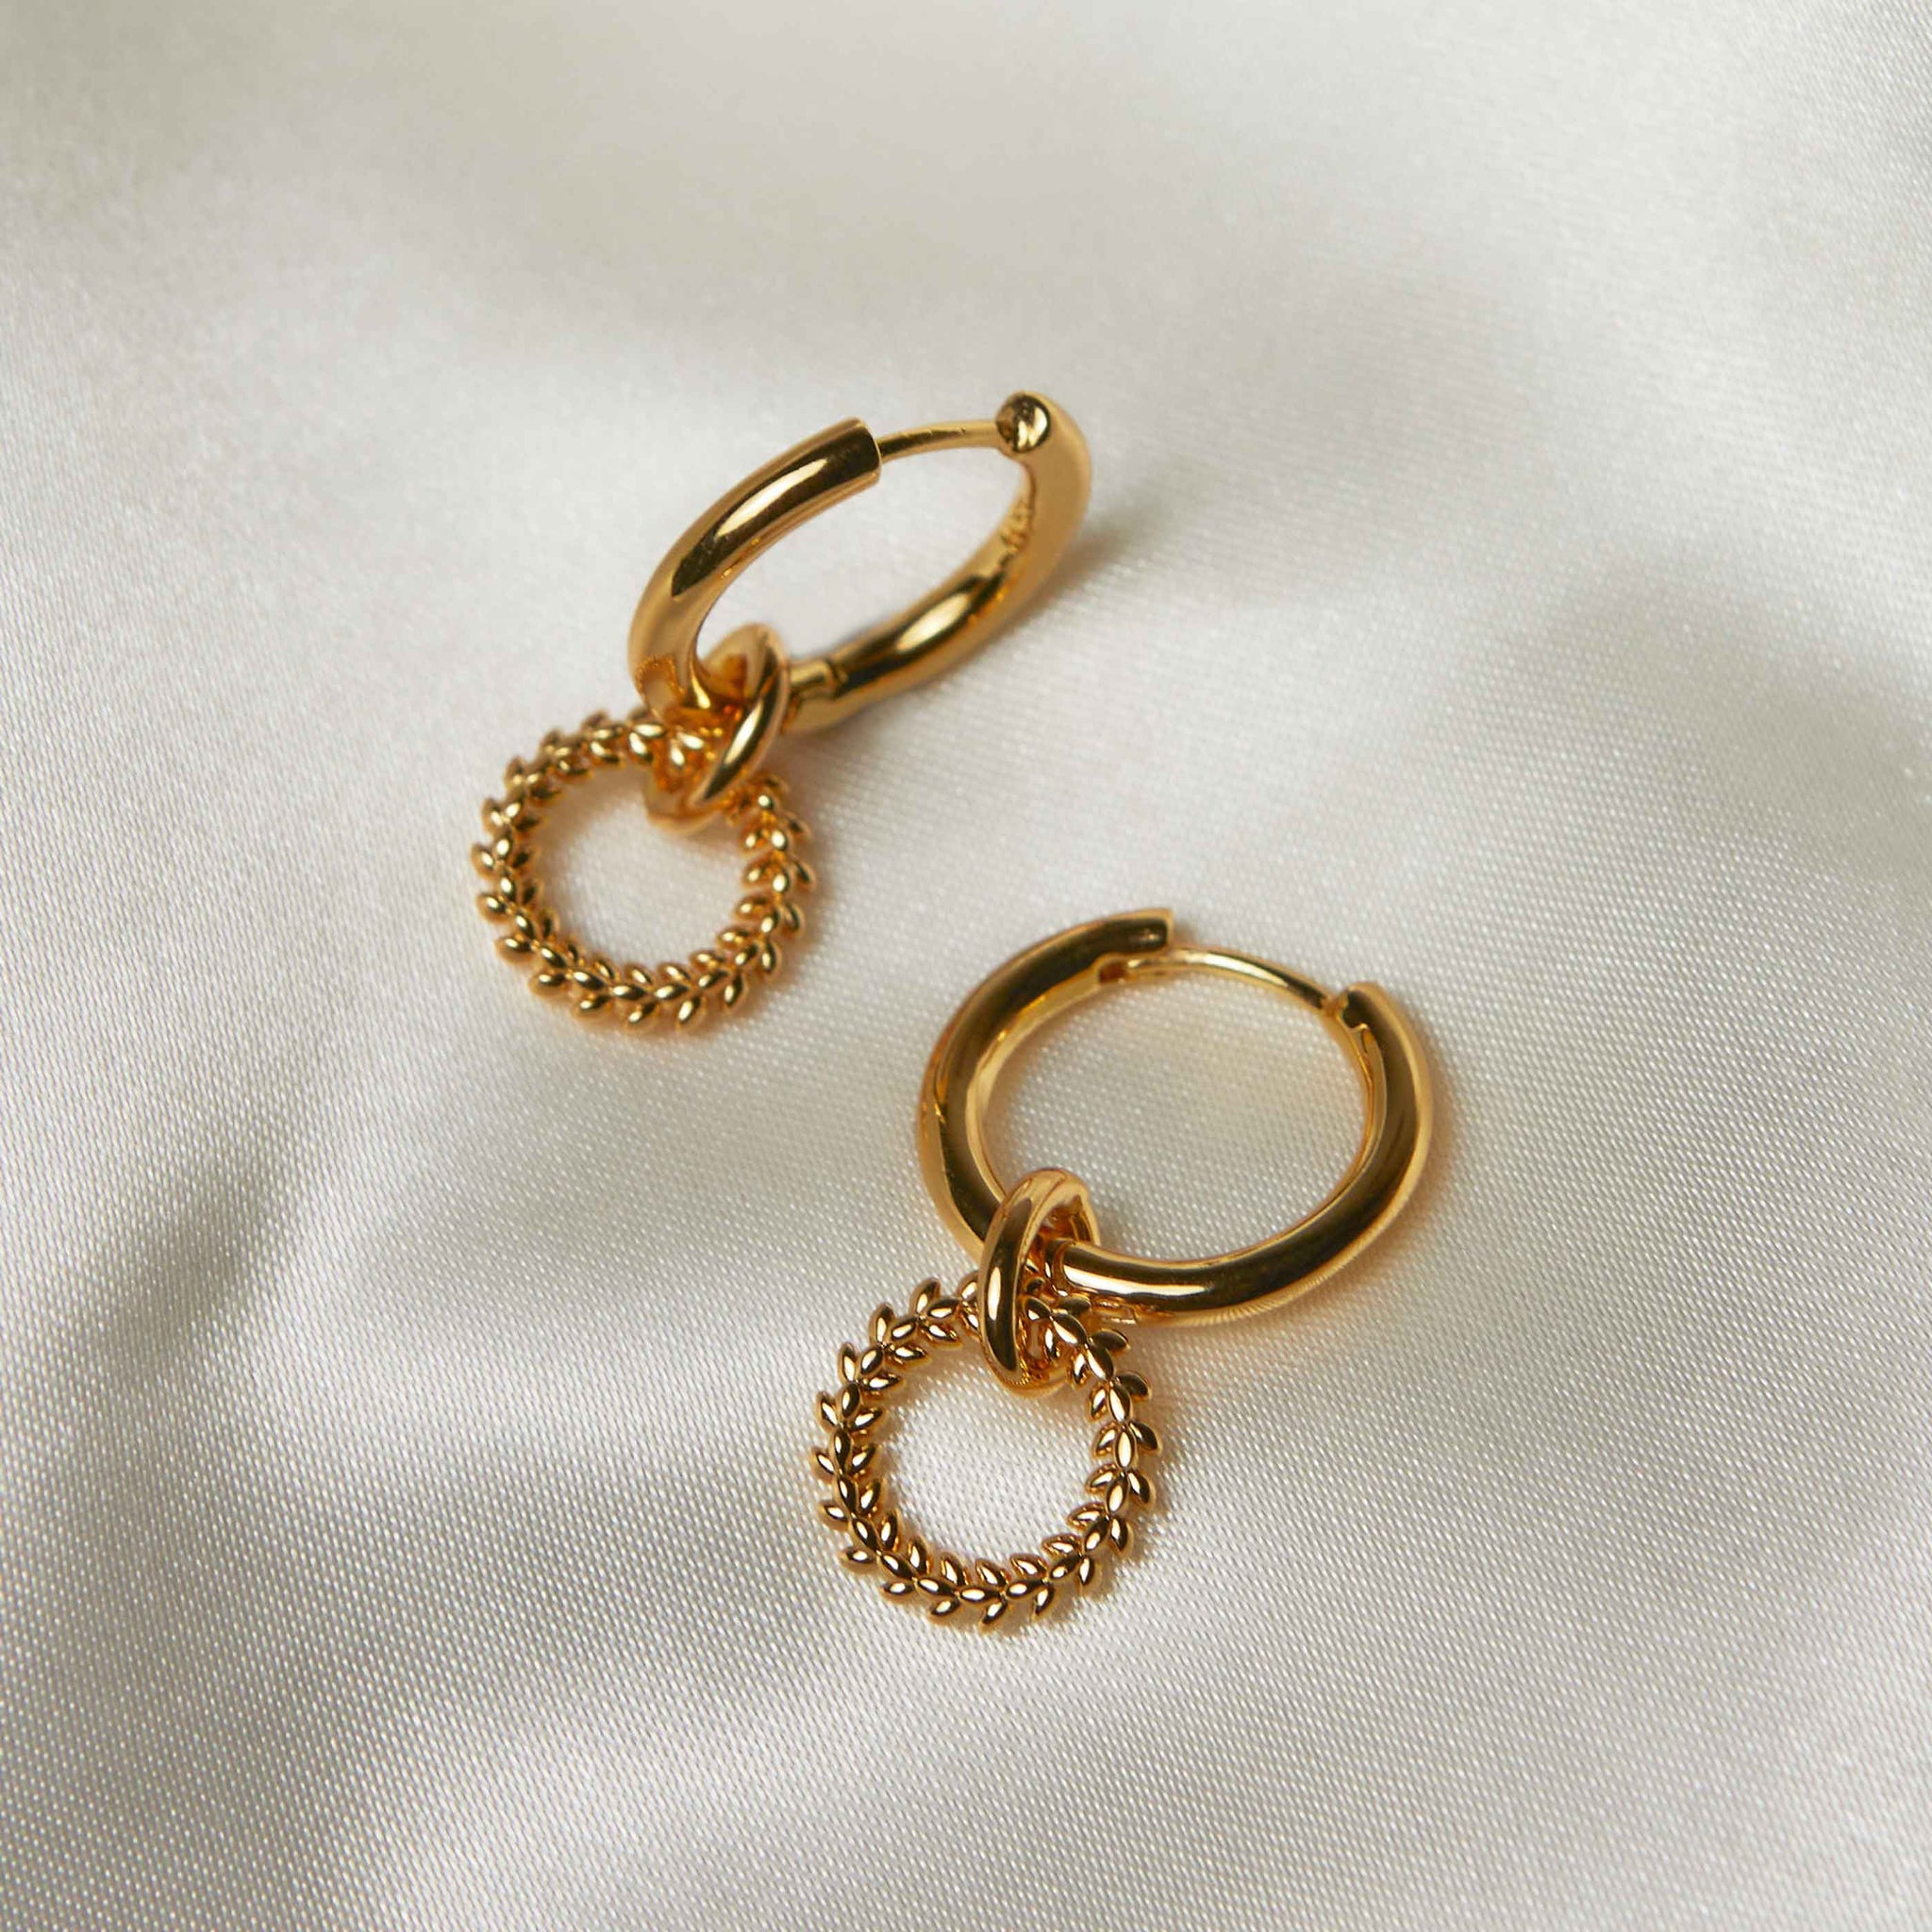 Wreath Charm Hoops in Gold